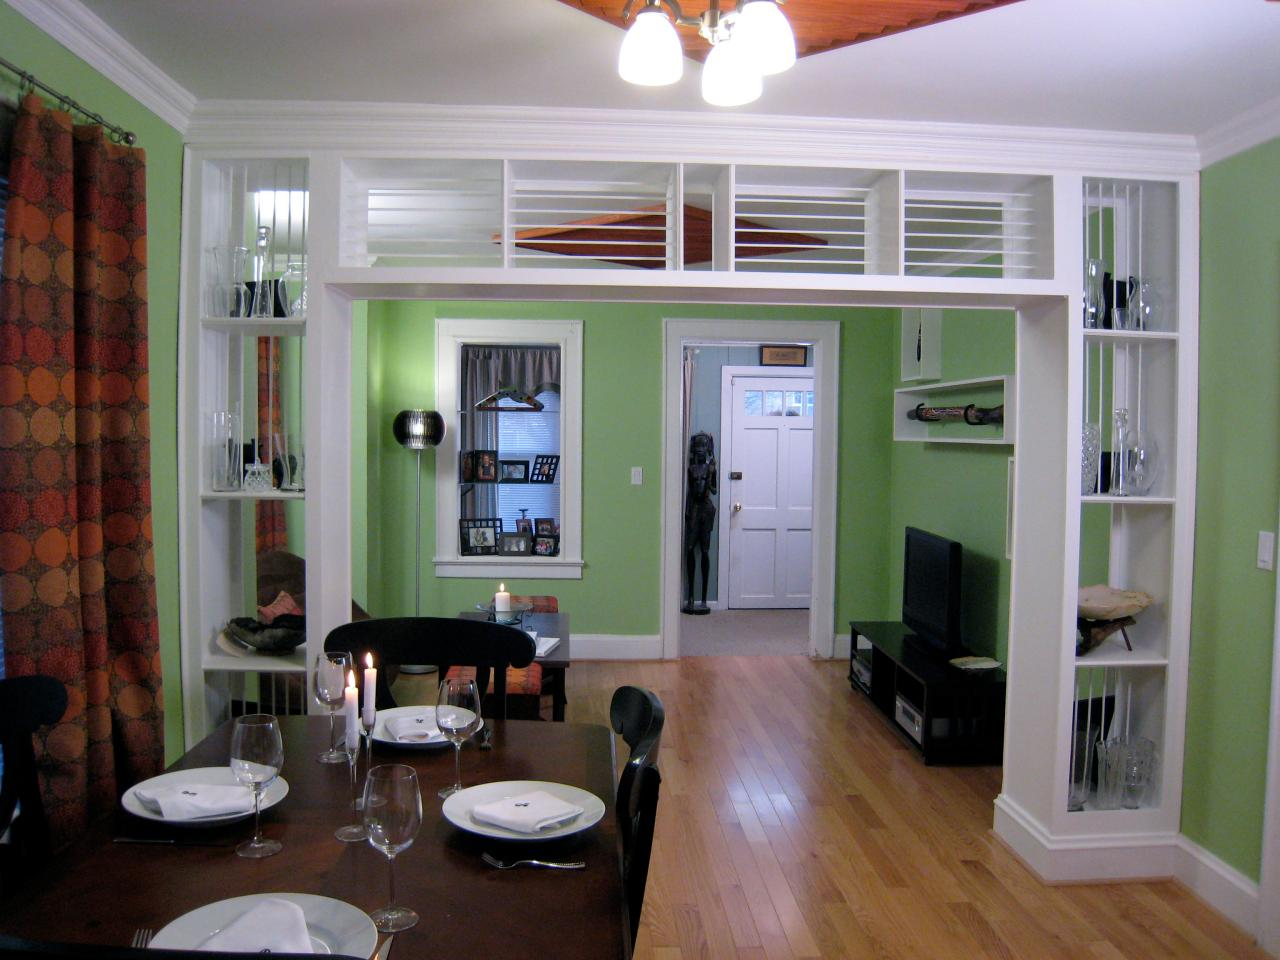 Built-in Bookcase and Room Divider - Built-in Bookcase And Room Divider HGTV